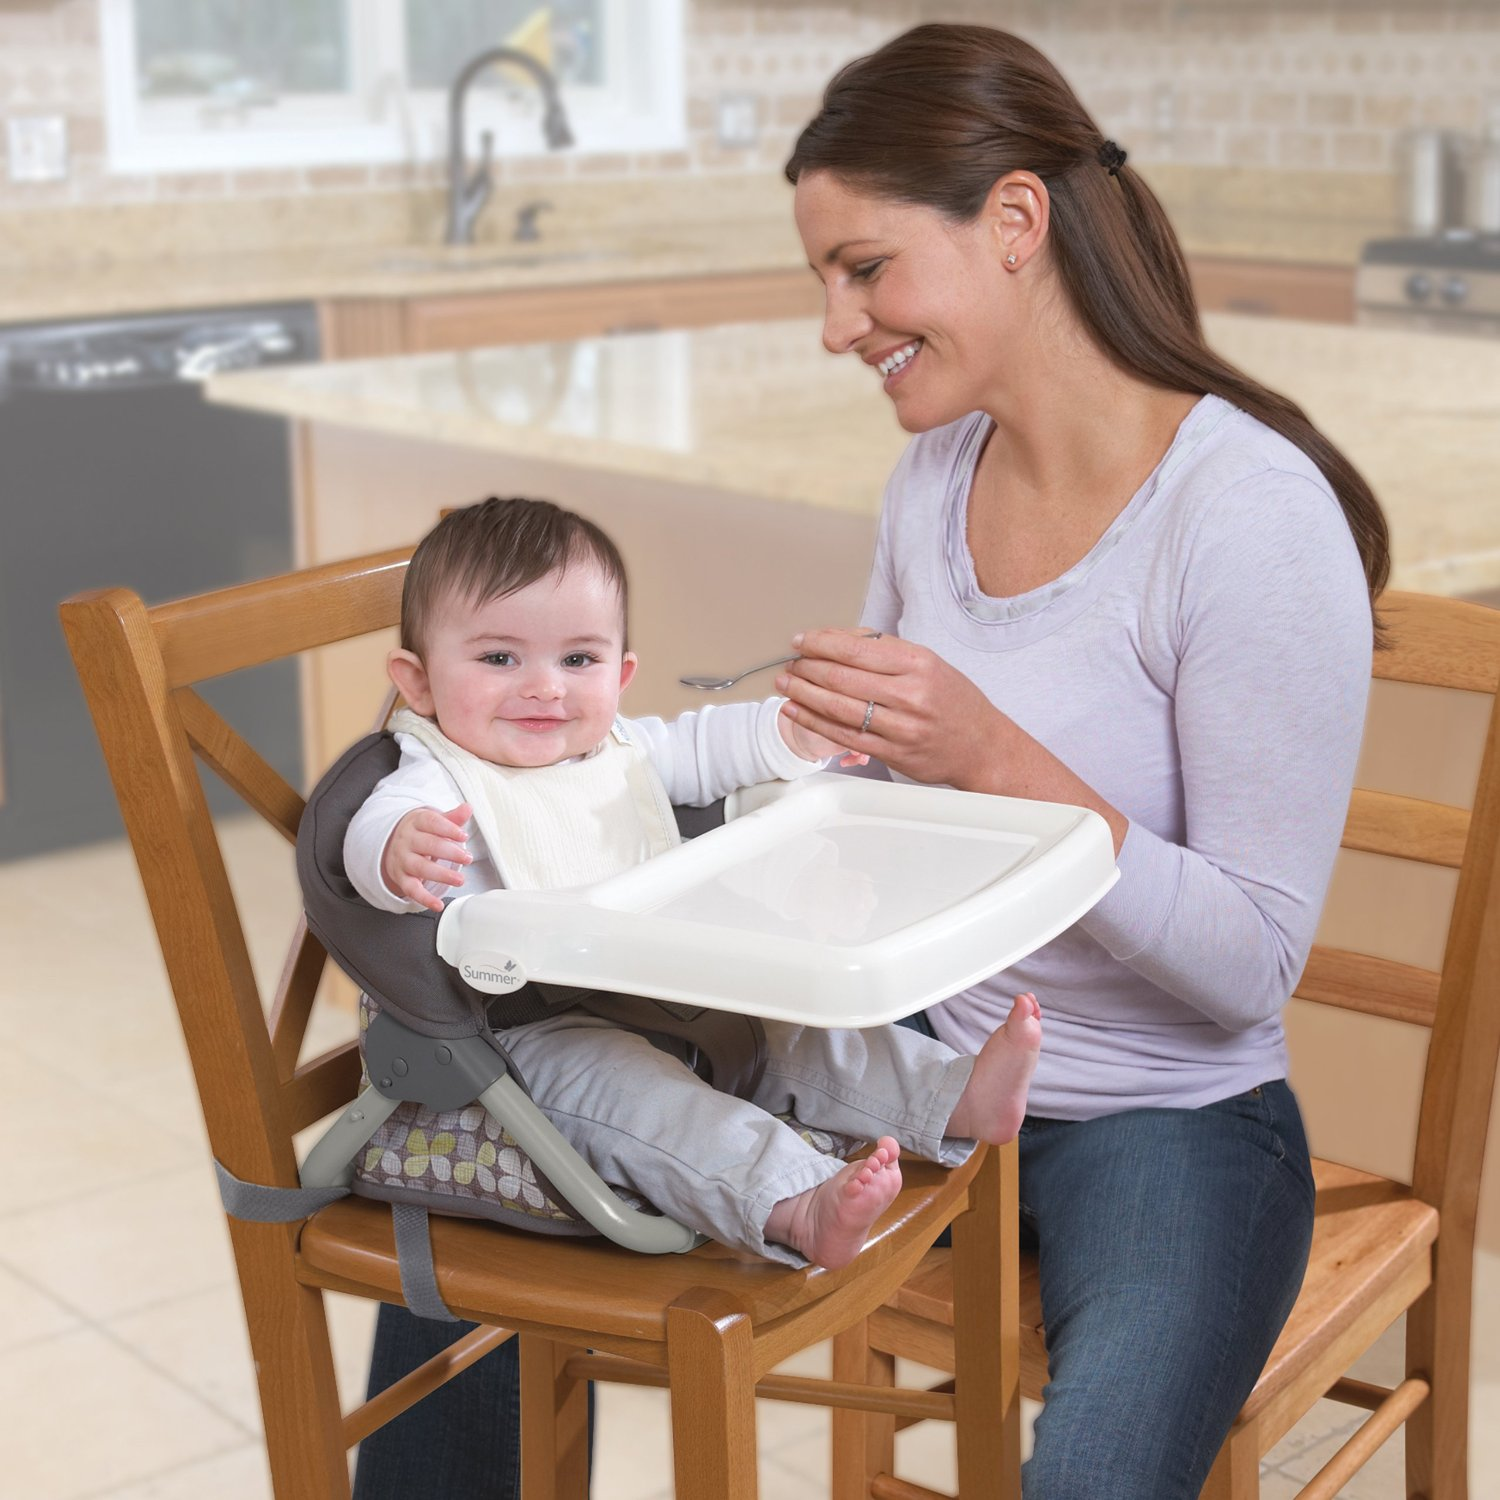 High Chairs For Babies And Toddlers Best Desk Baby Chair That Attaches To Table A Neat Idea